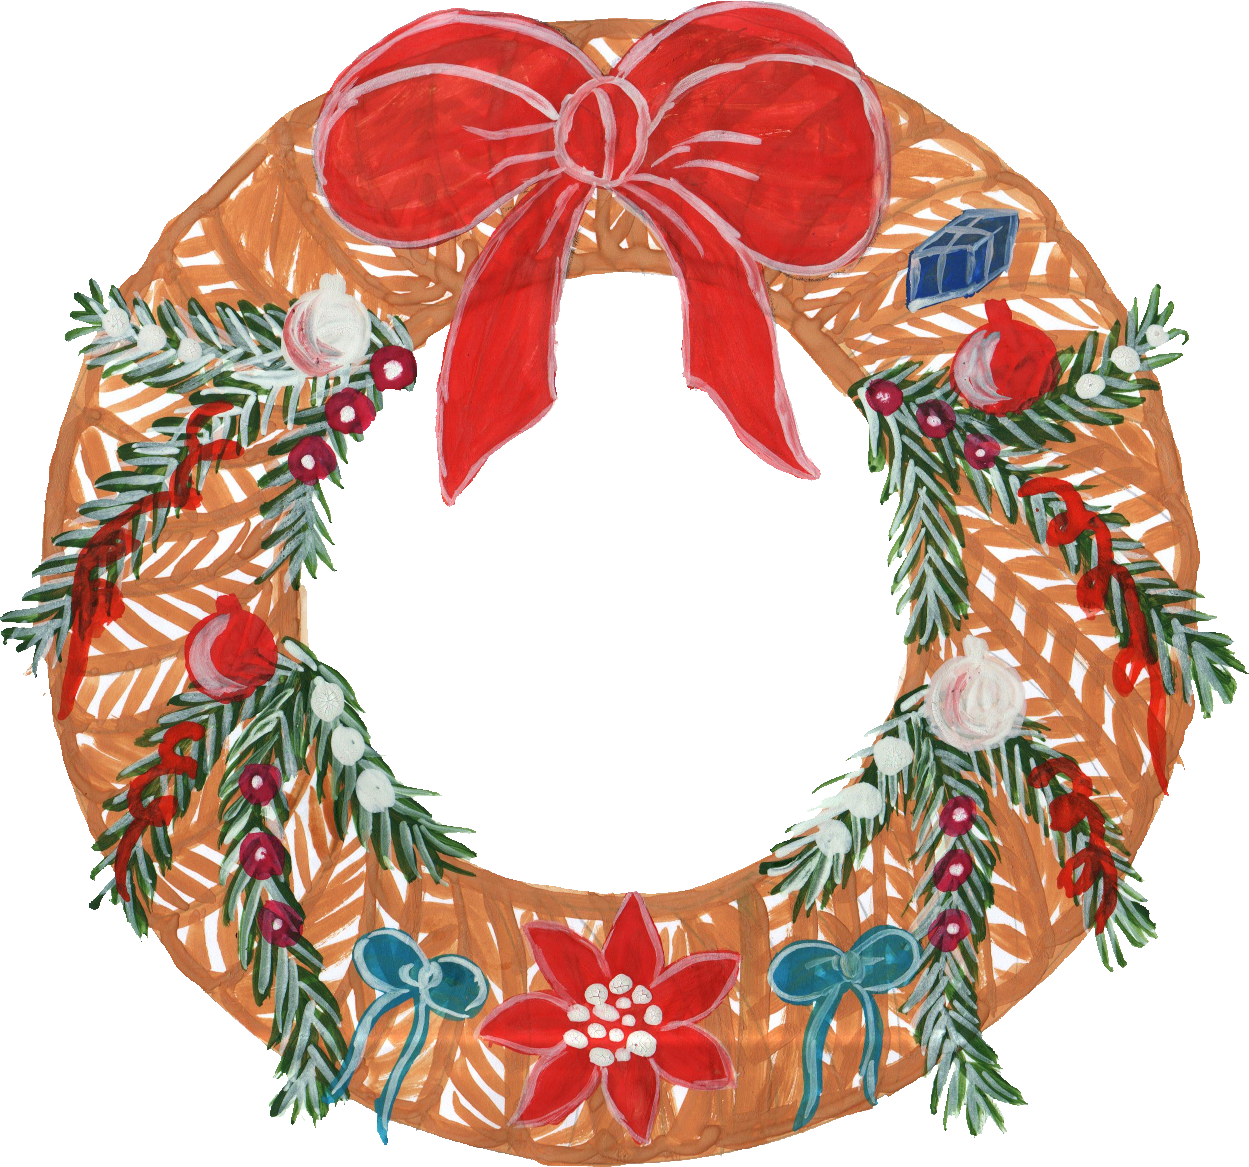 Floral Wreath Painting